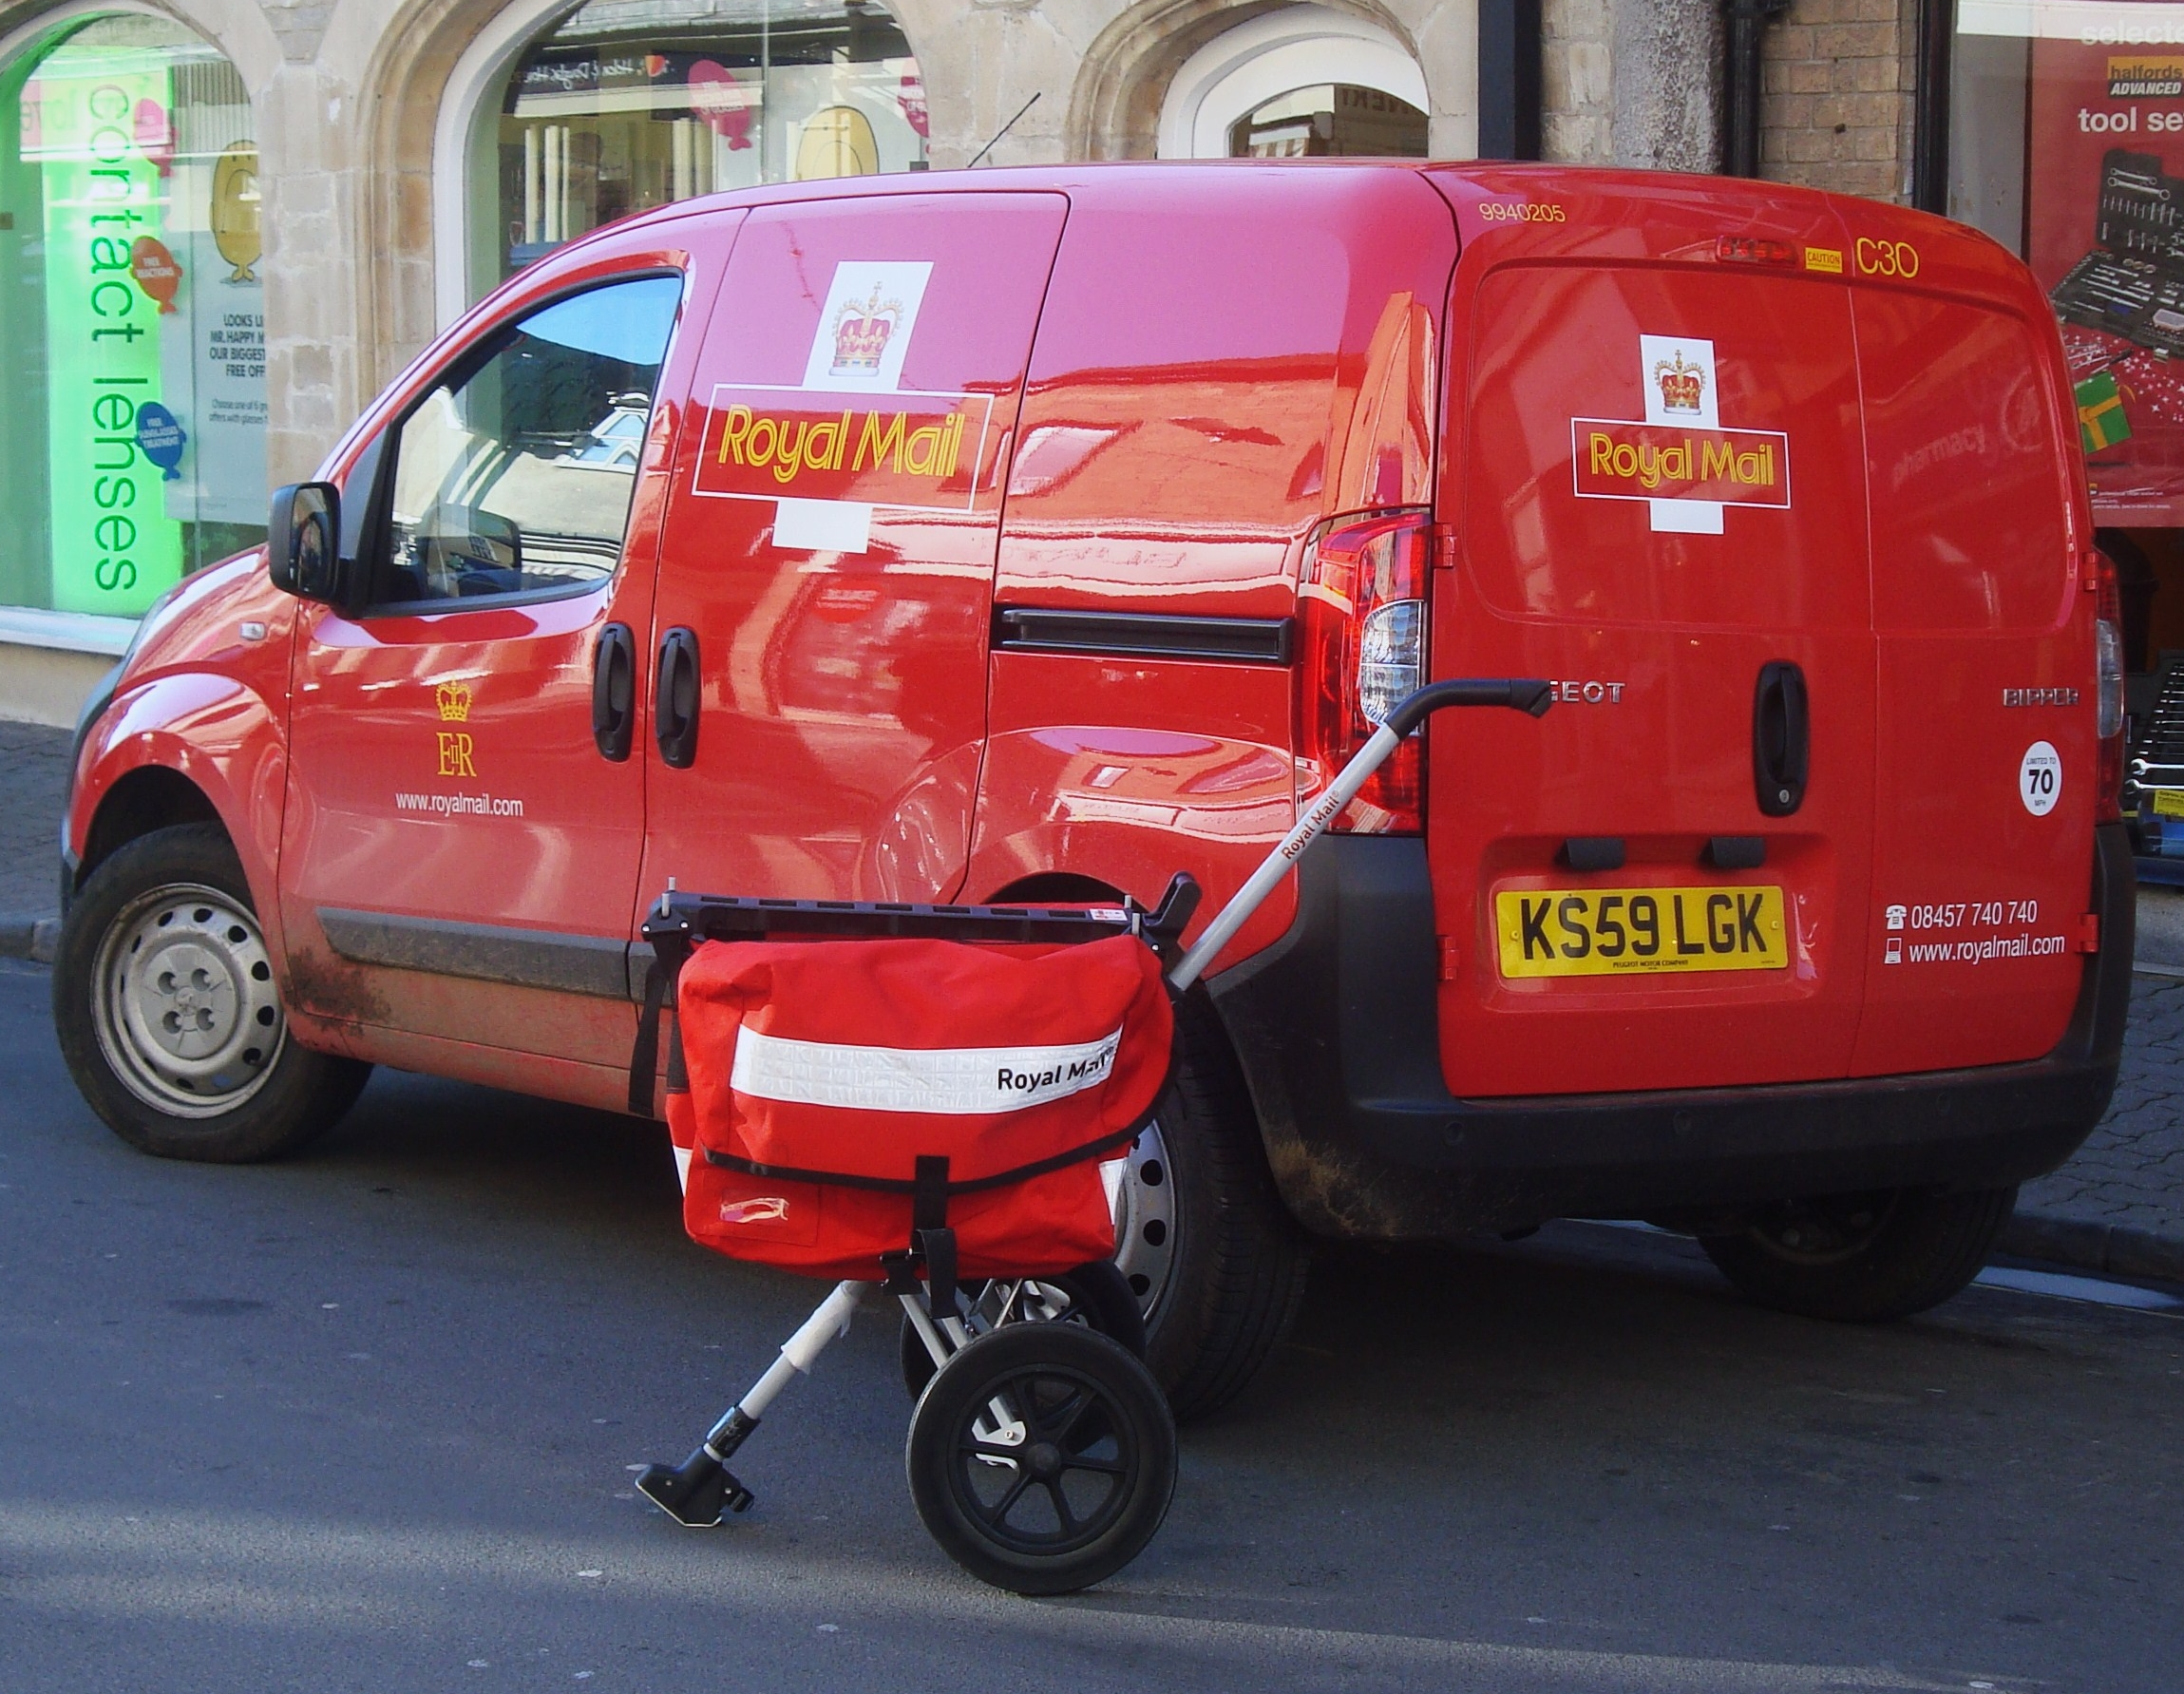 New storage technology to help deliveries to building sites